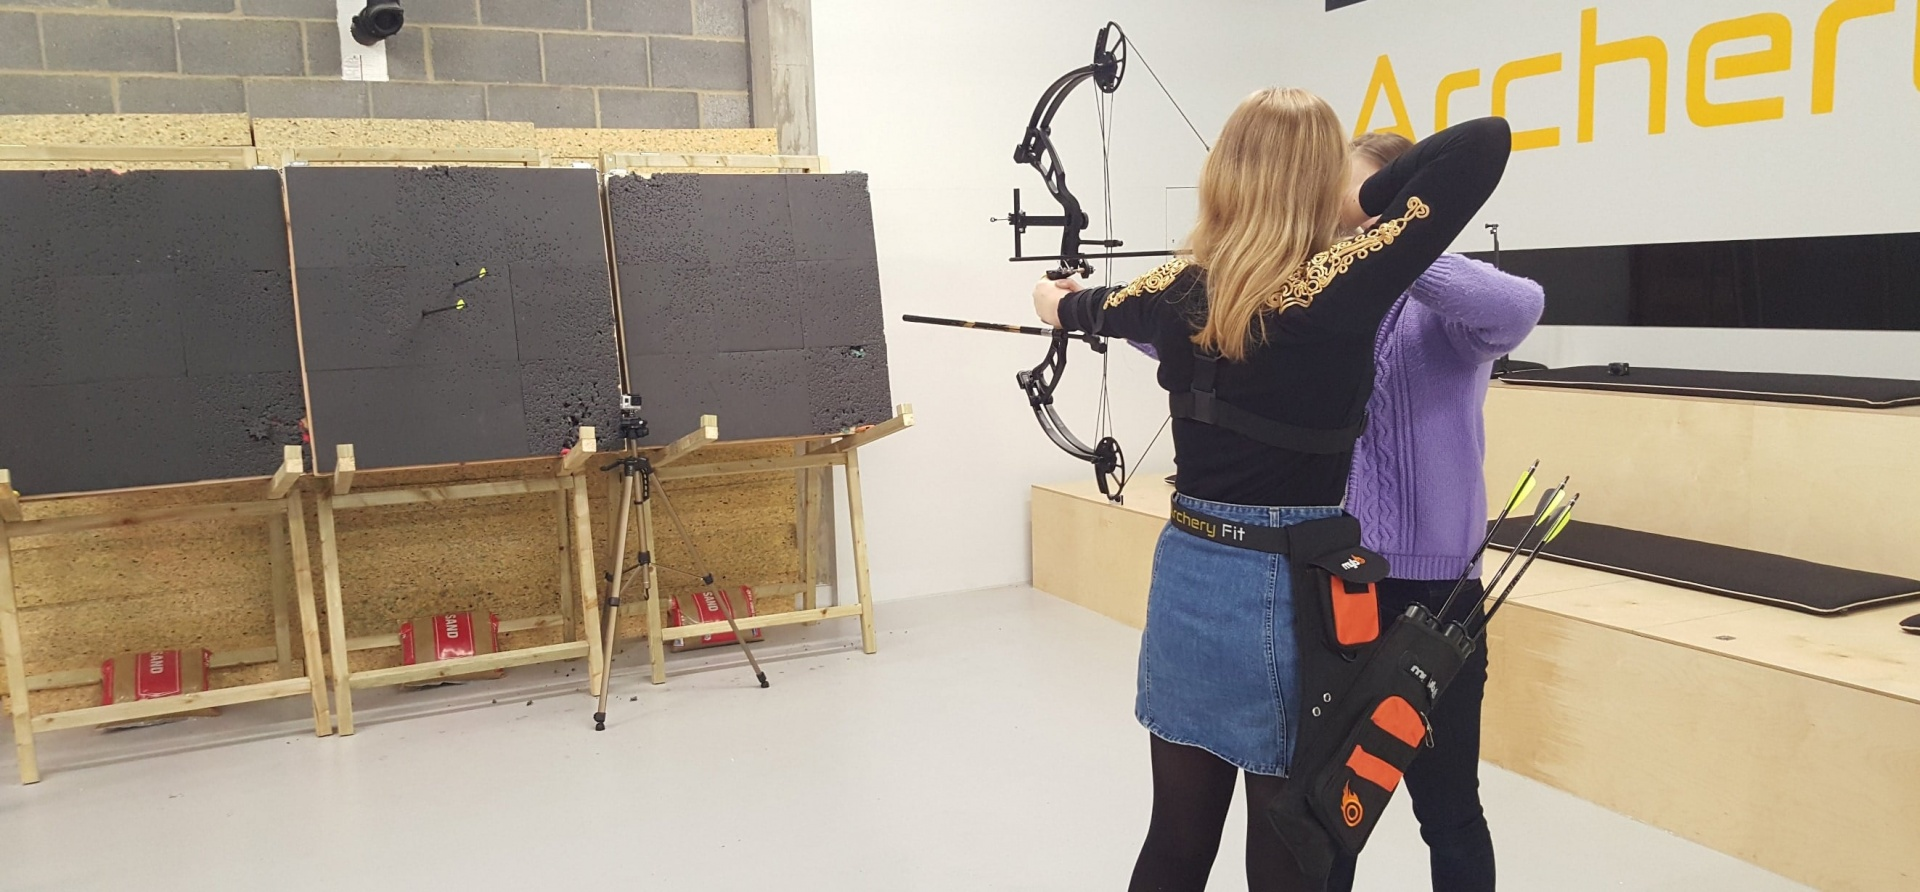 1.5 Hour Archery Lesson in London-4